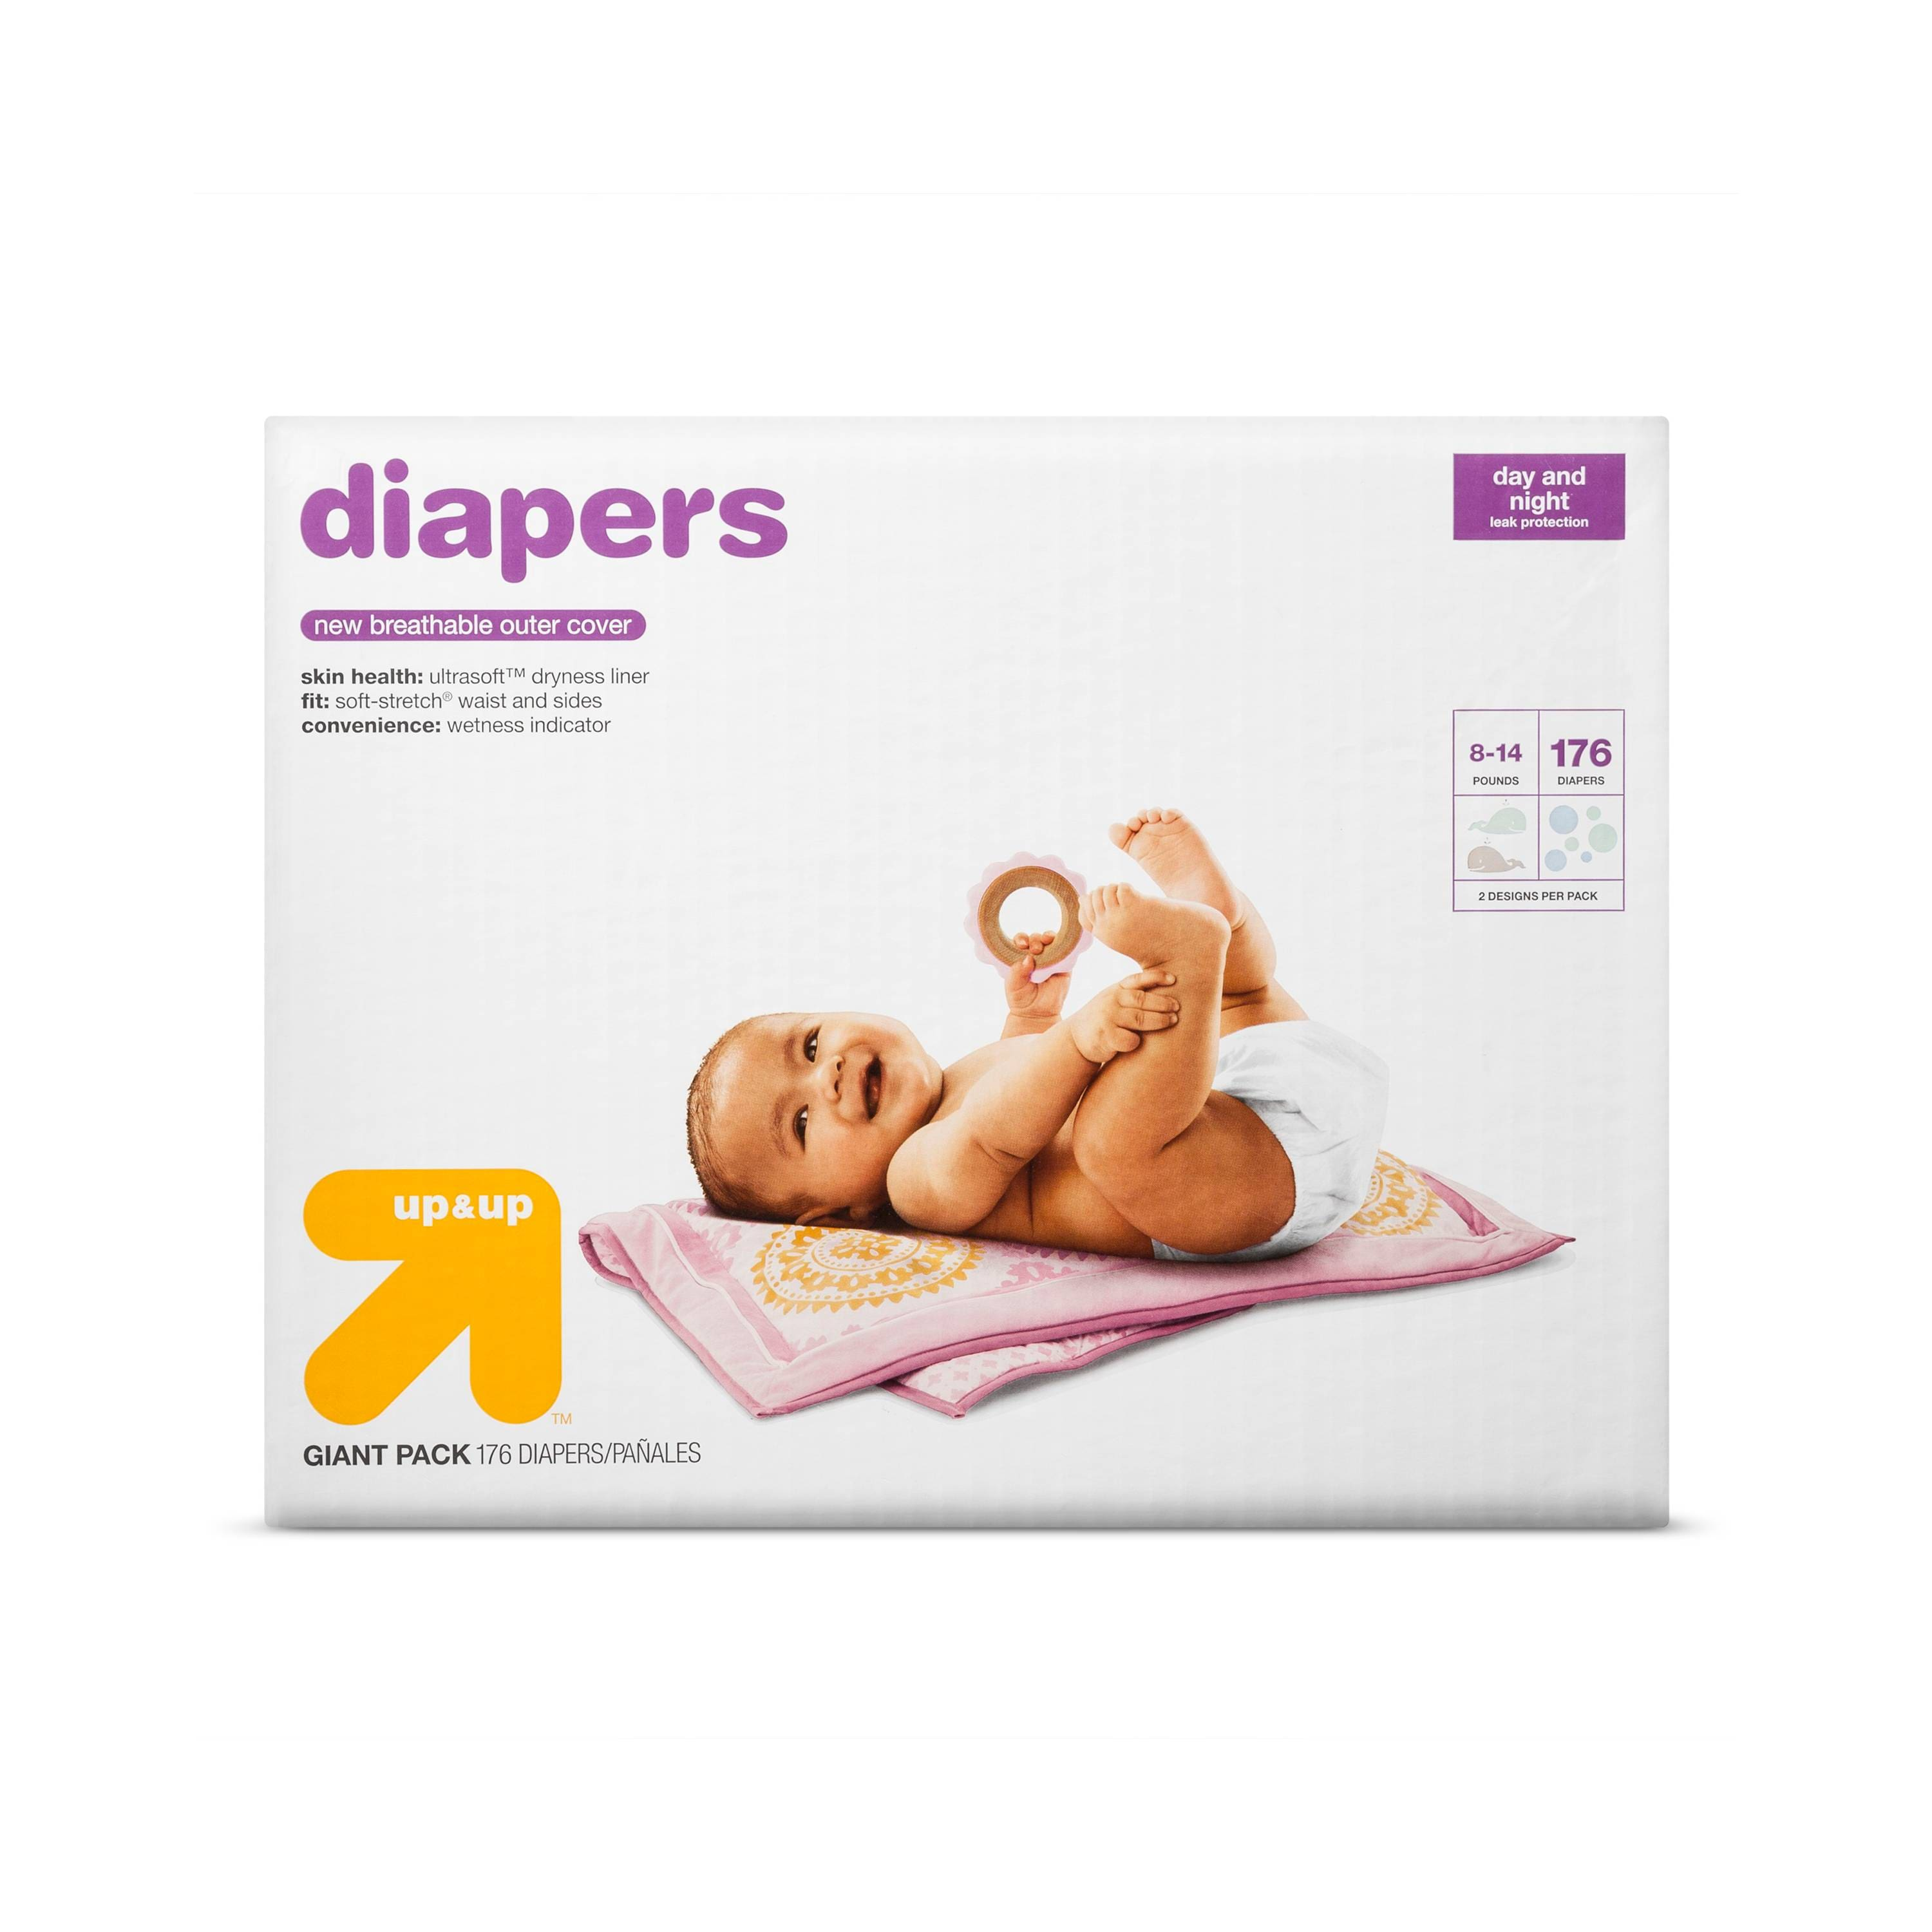 2-Pack Up & Up Giant Pack Diapers + $15 Target eGift Card  $51 + Free Shipping